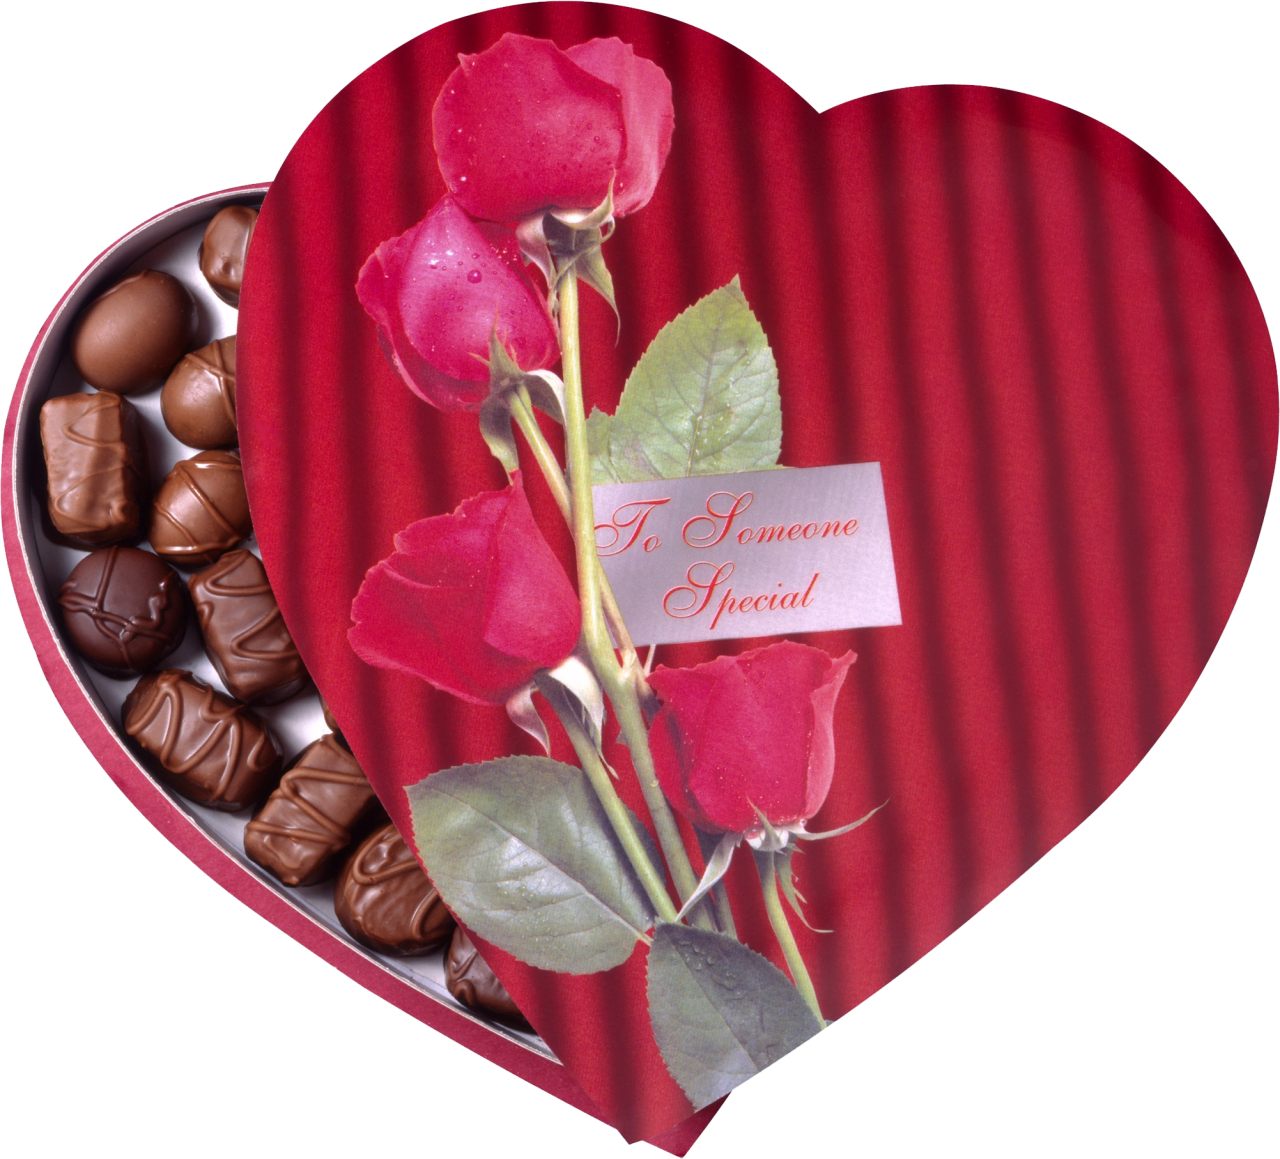 Clipart roses chocolate. Image heart shaped box